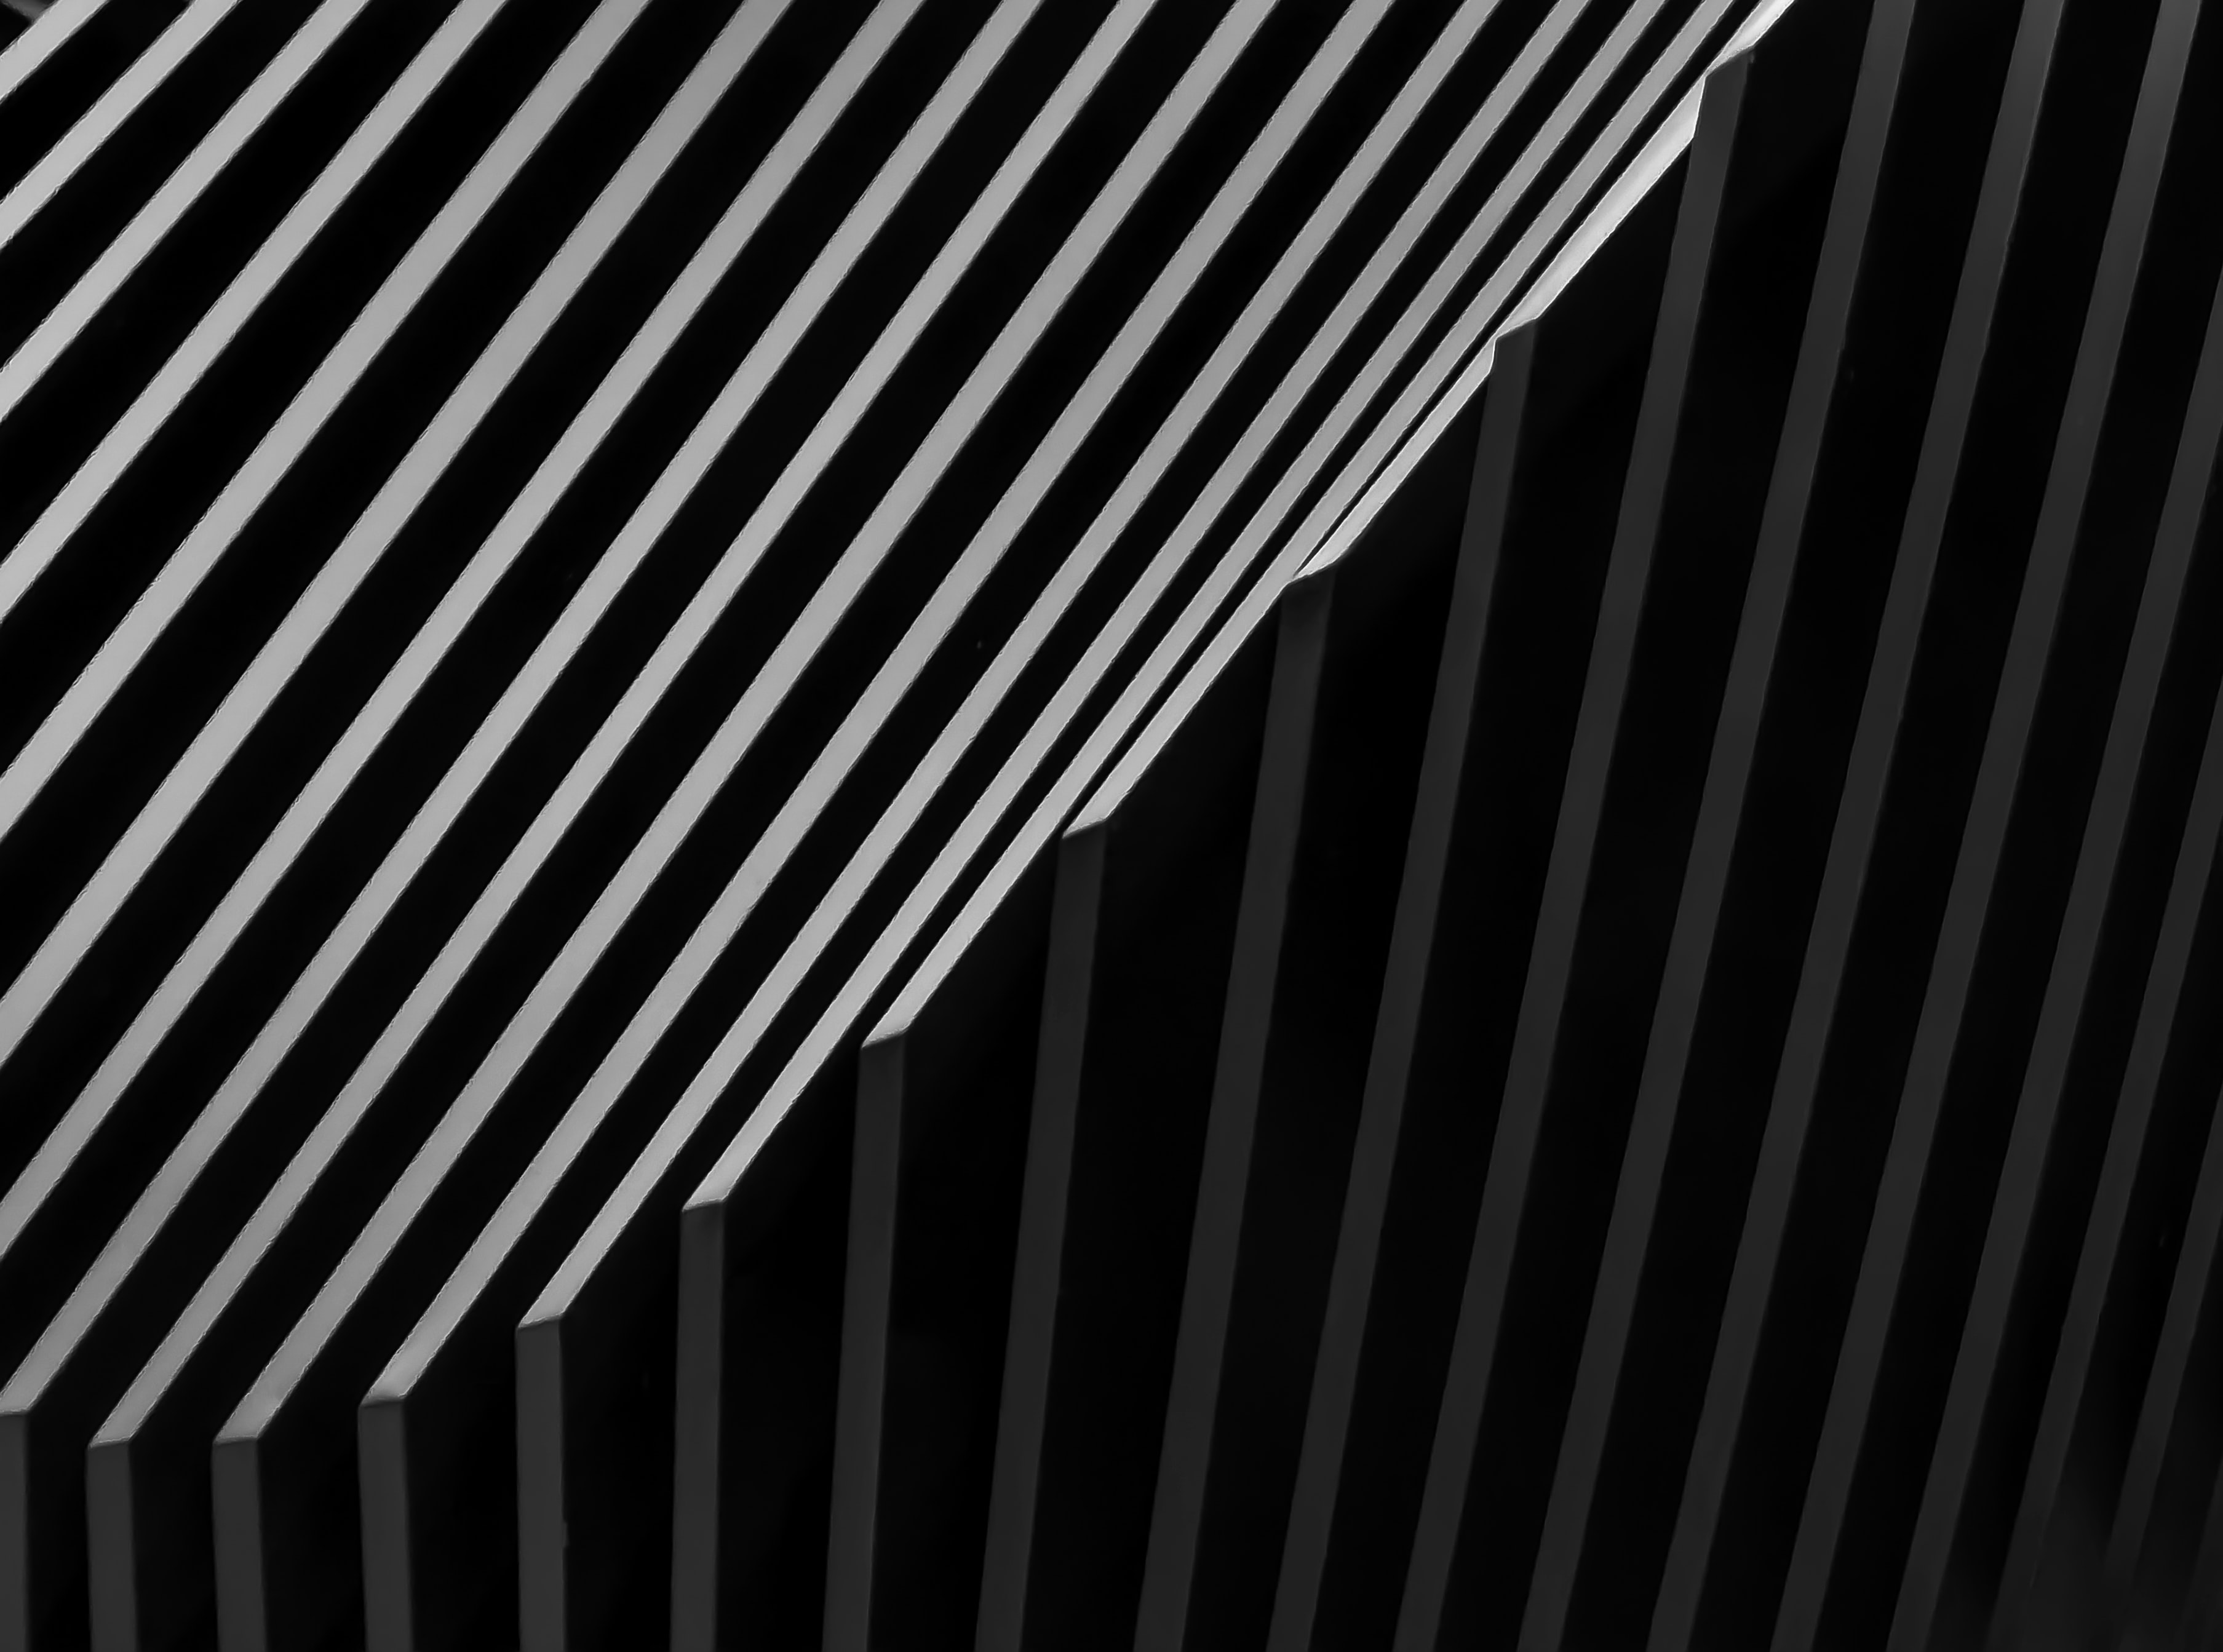 122455 download wallpaper Miscellanea, Miscellaneous, Design, Construction, Bw, Chb, Grey, Architecture screensavers and pictures for free